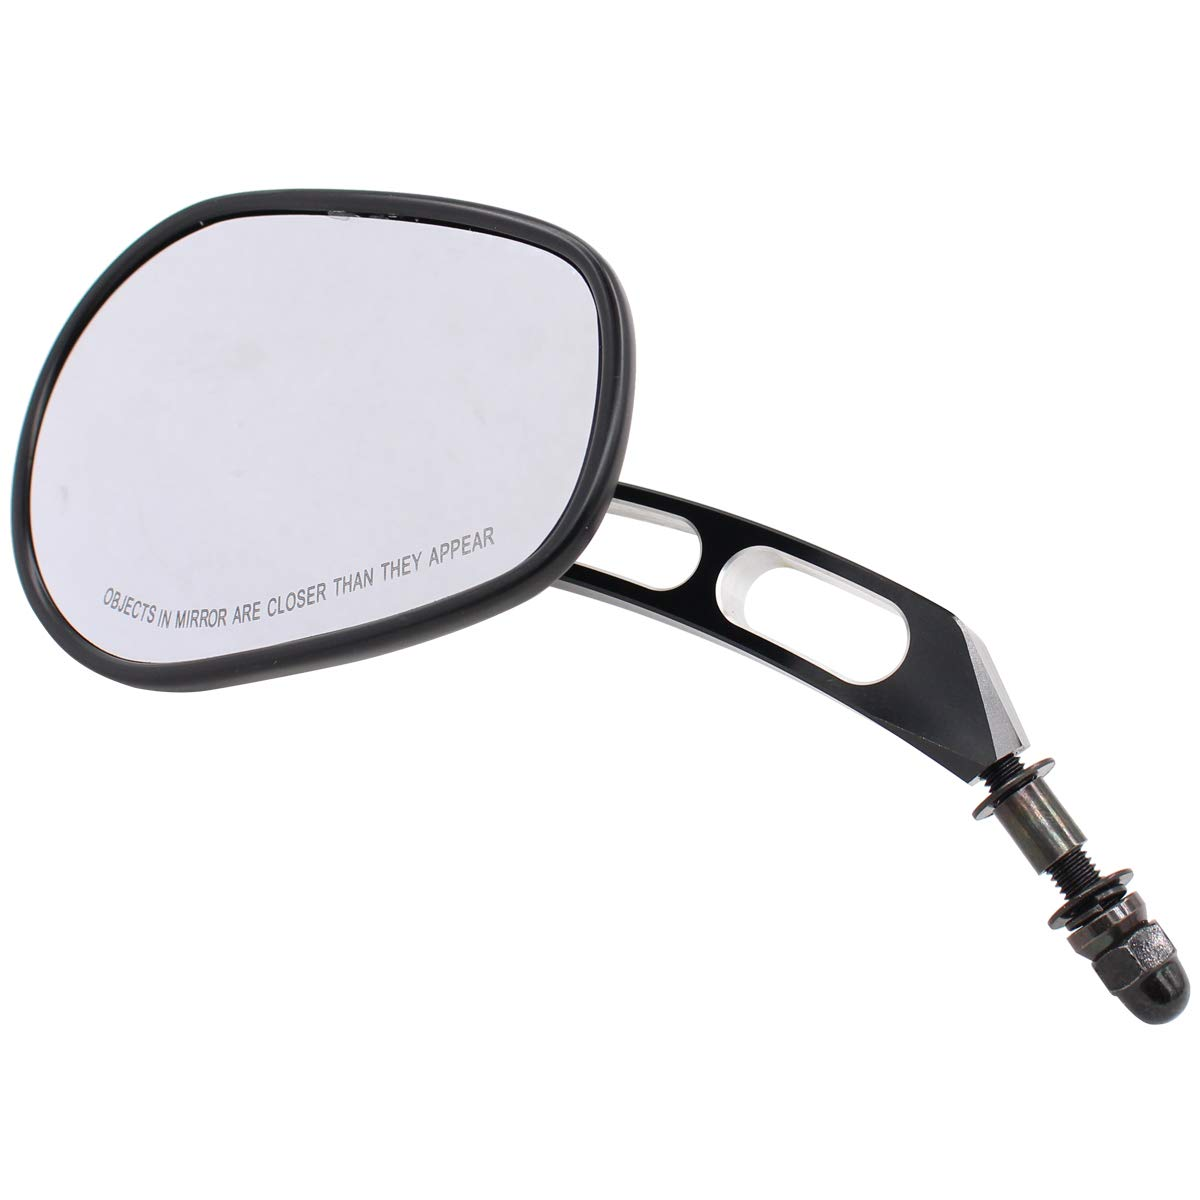 NewYall Set of 2 Left and Right Side Rear View Mirror